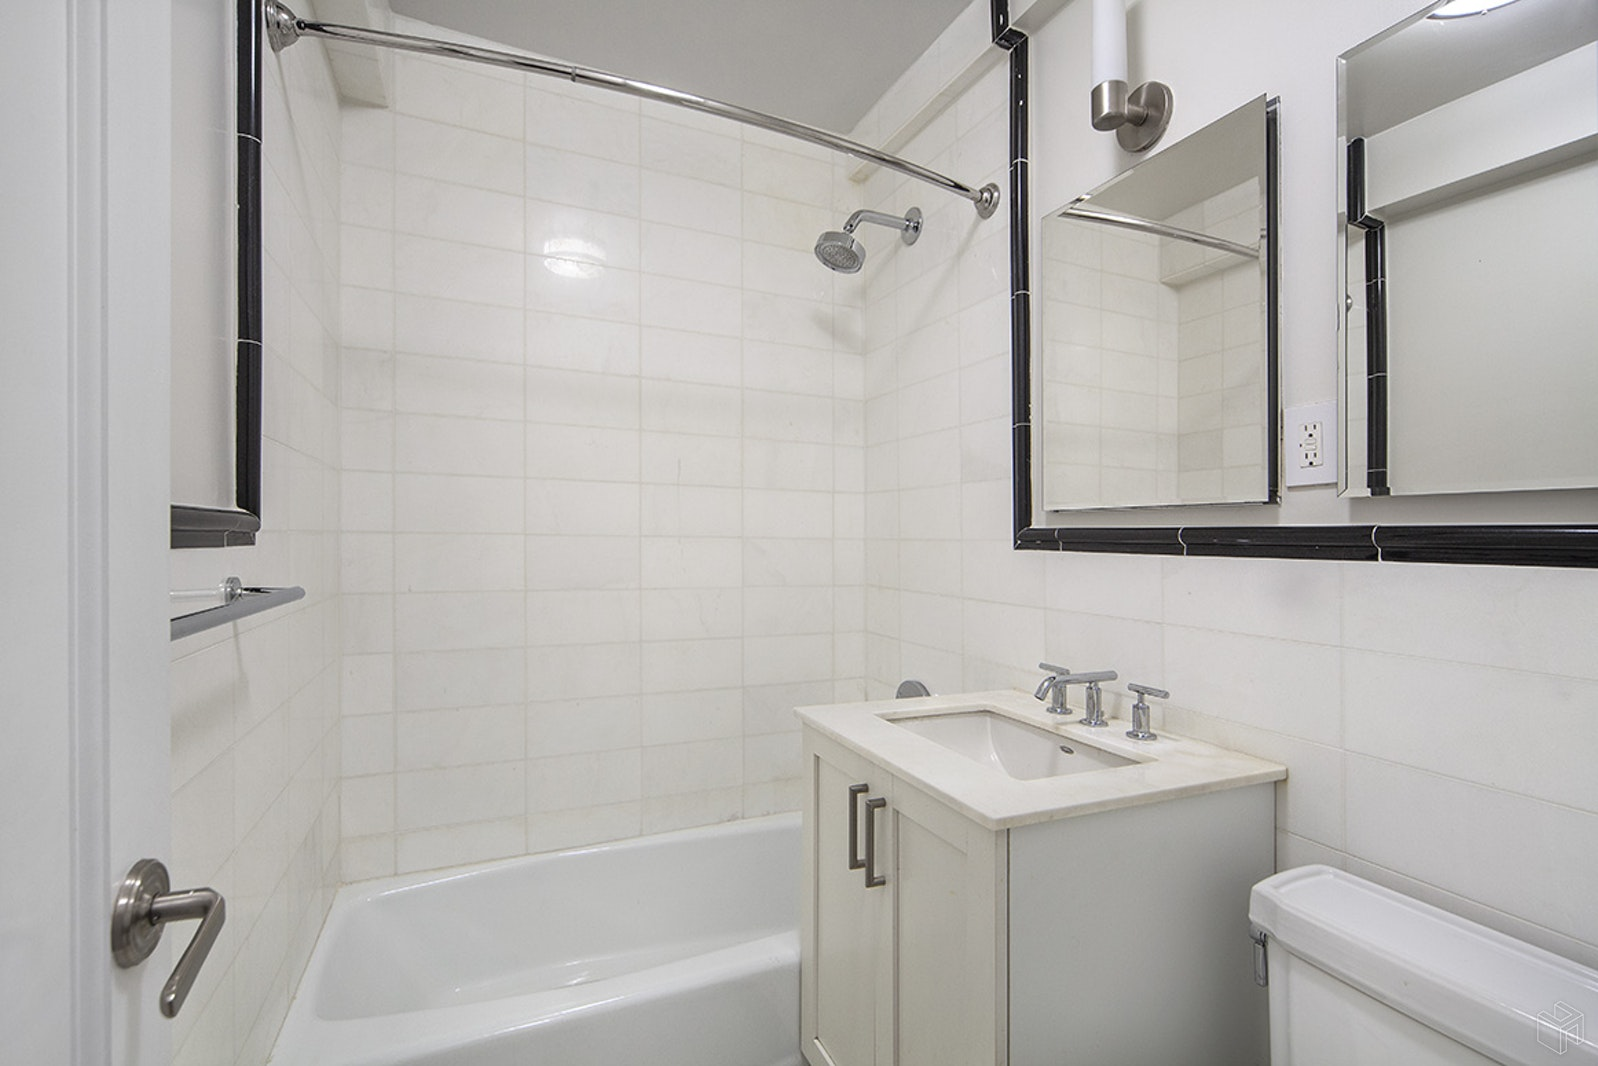 340 East 52nd Street 4e, Midtown East, NYC, 10022, $2,650, Rented Property, Halstead Real Estate, Photo 4